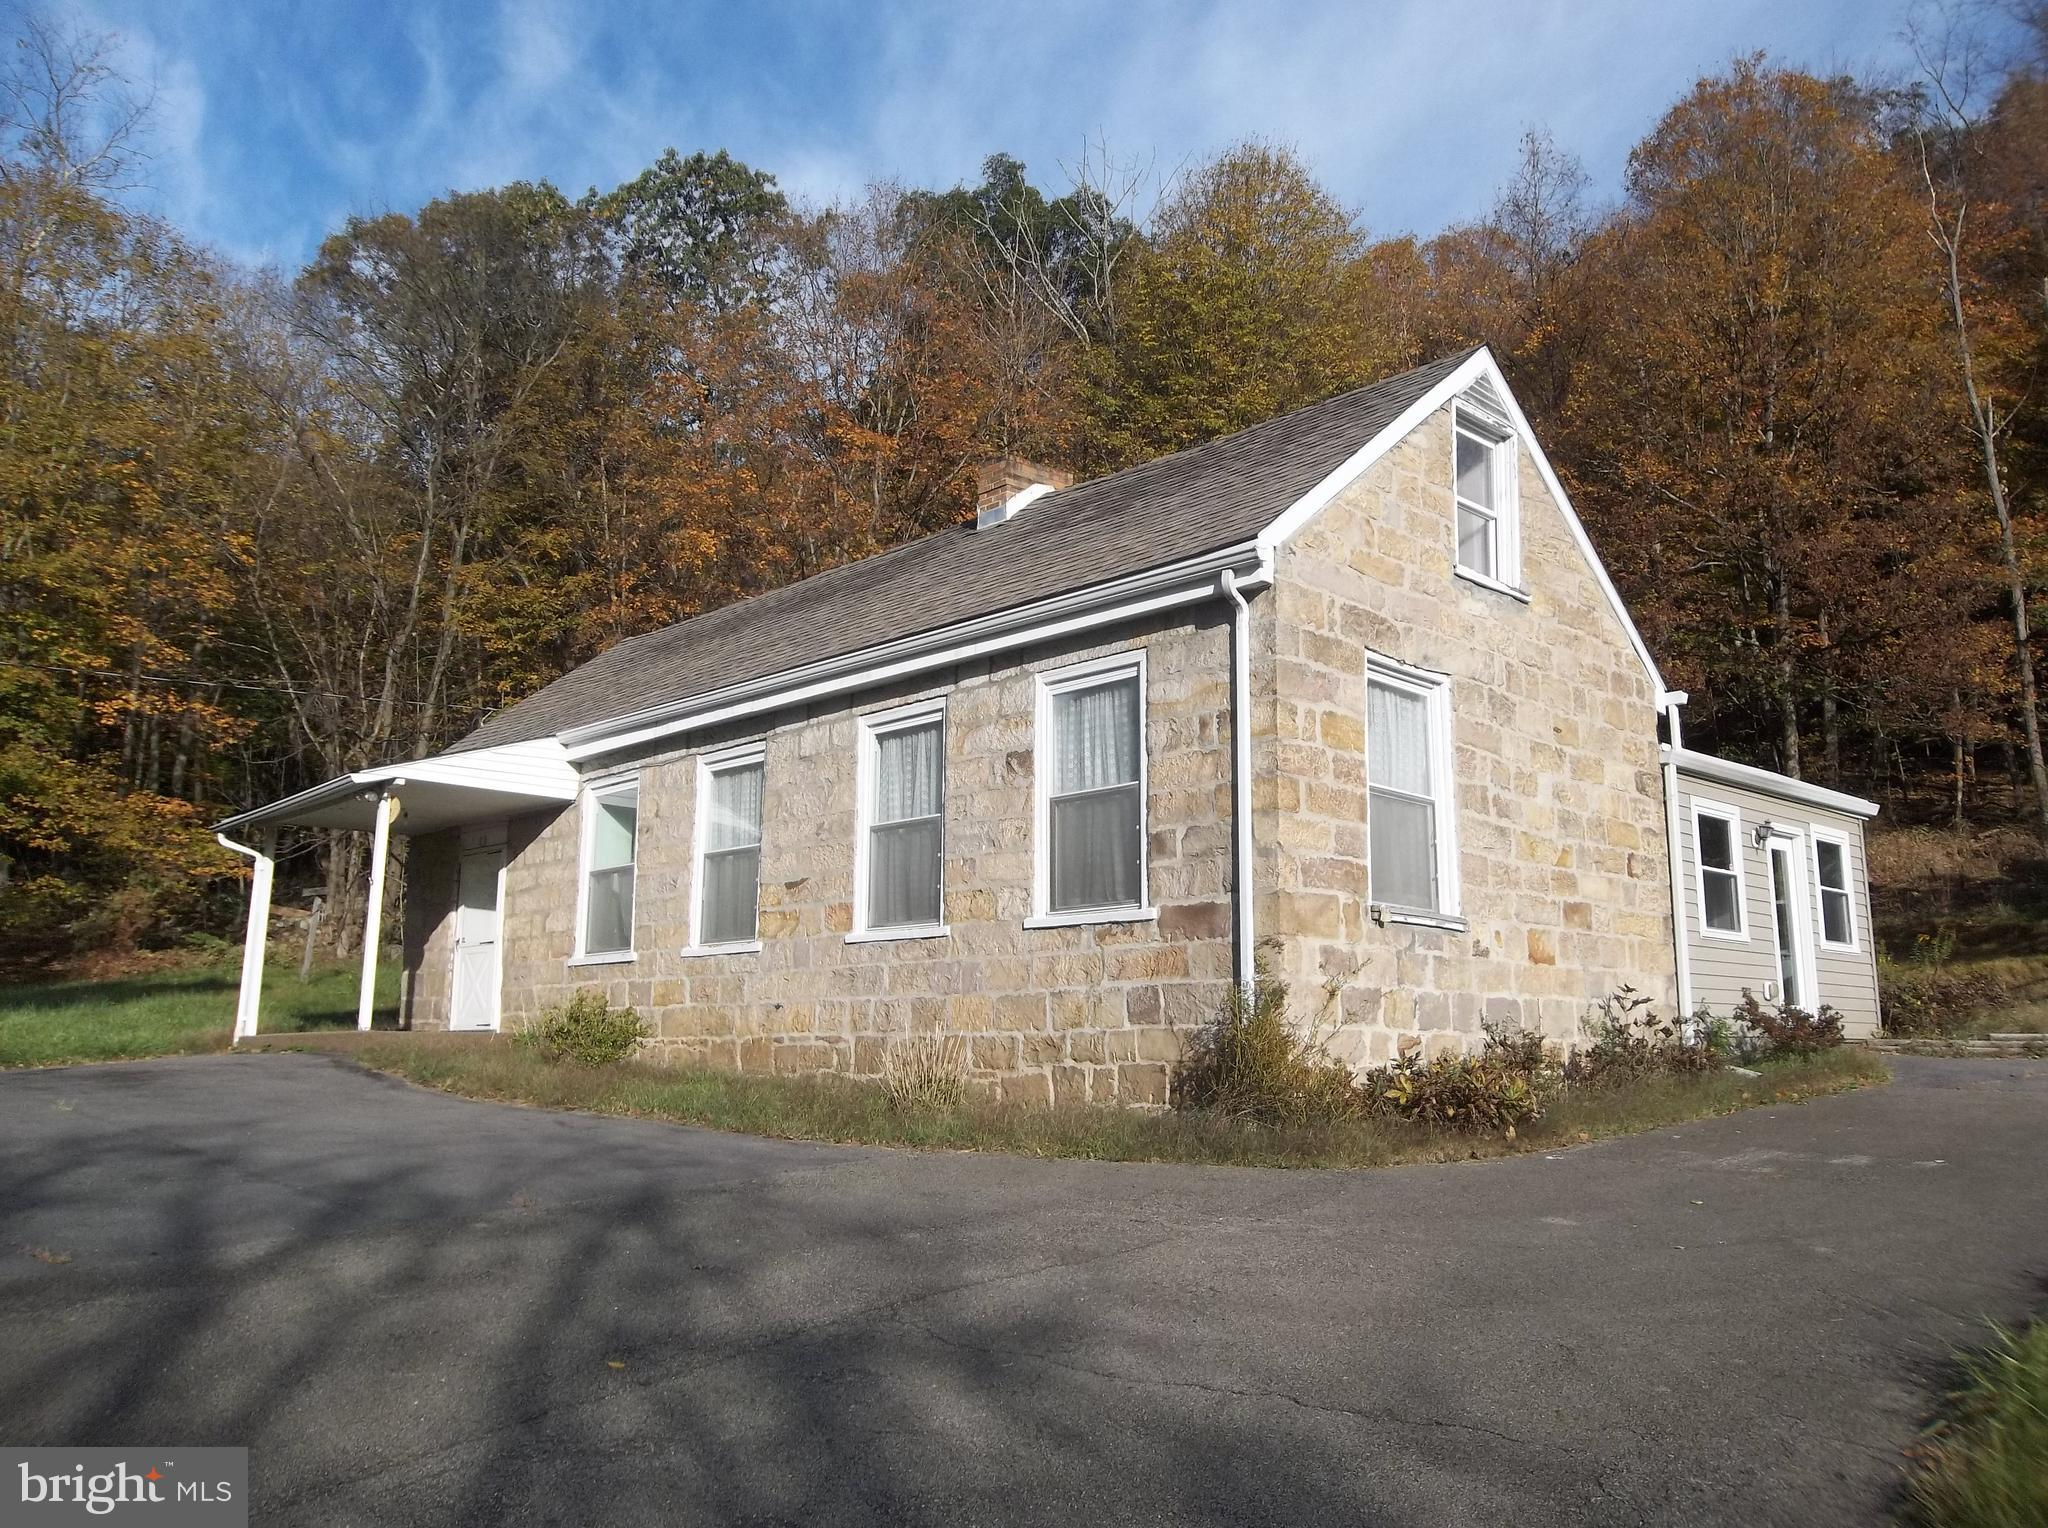 13110 OLD STONE HOUSE ROAD NW, MOUNT SAVAGE, MD 21545